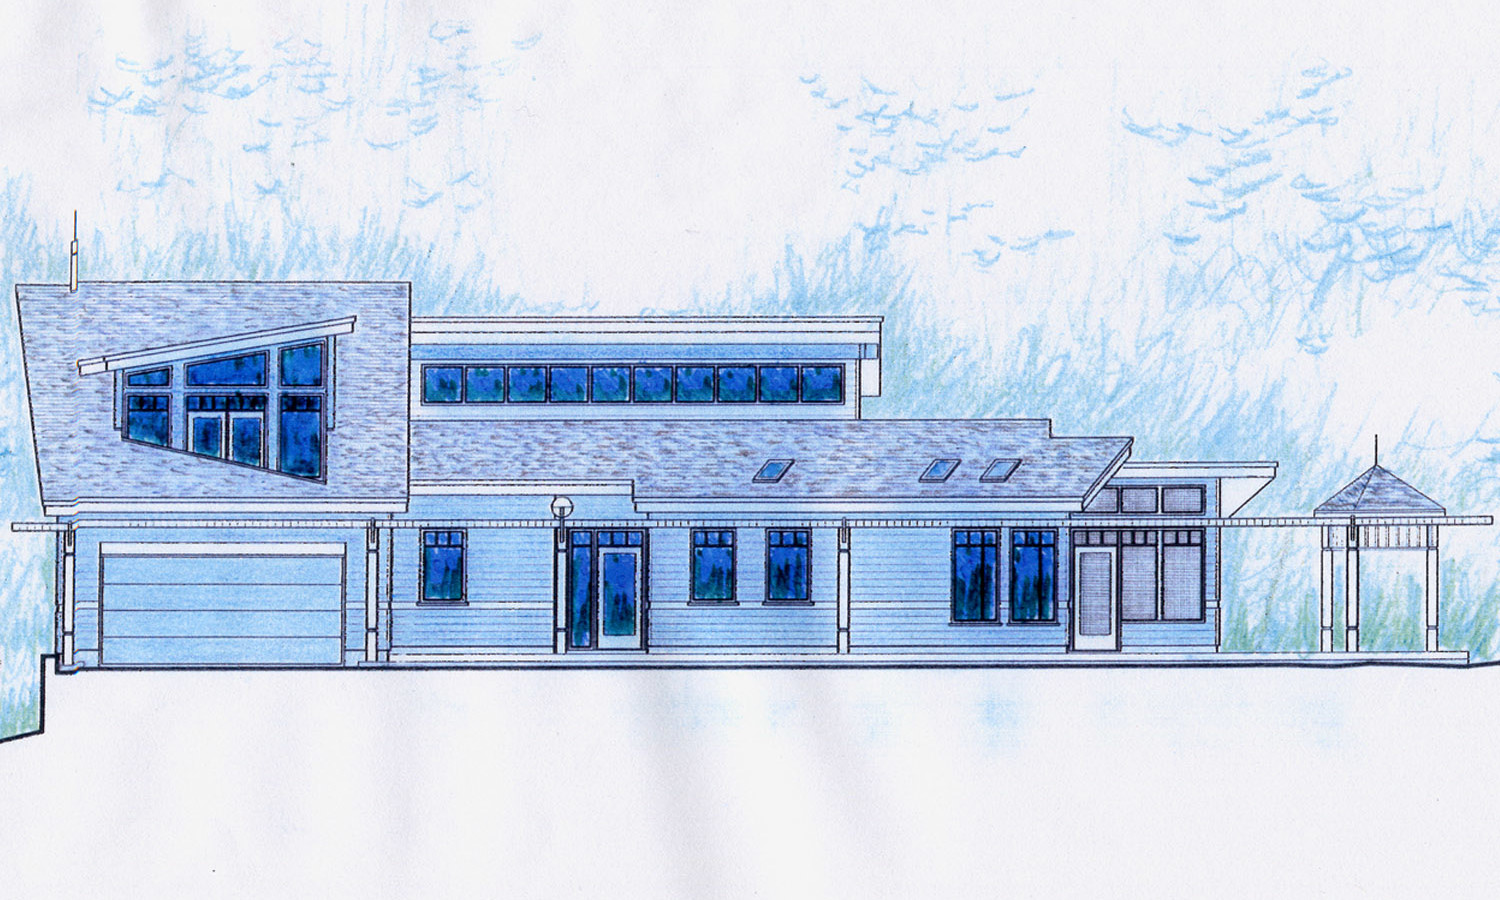 Elevation Sketch View of Front Elevation (Road Side)